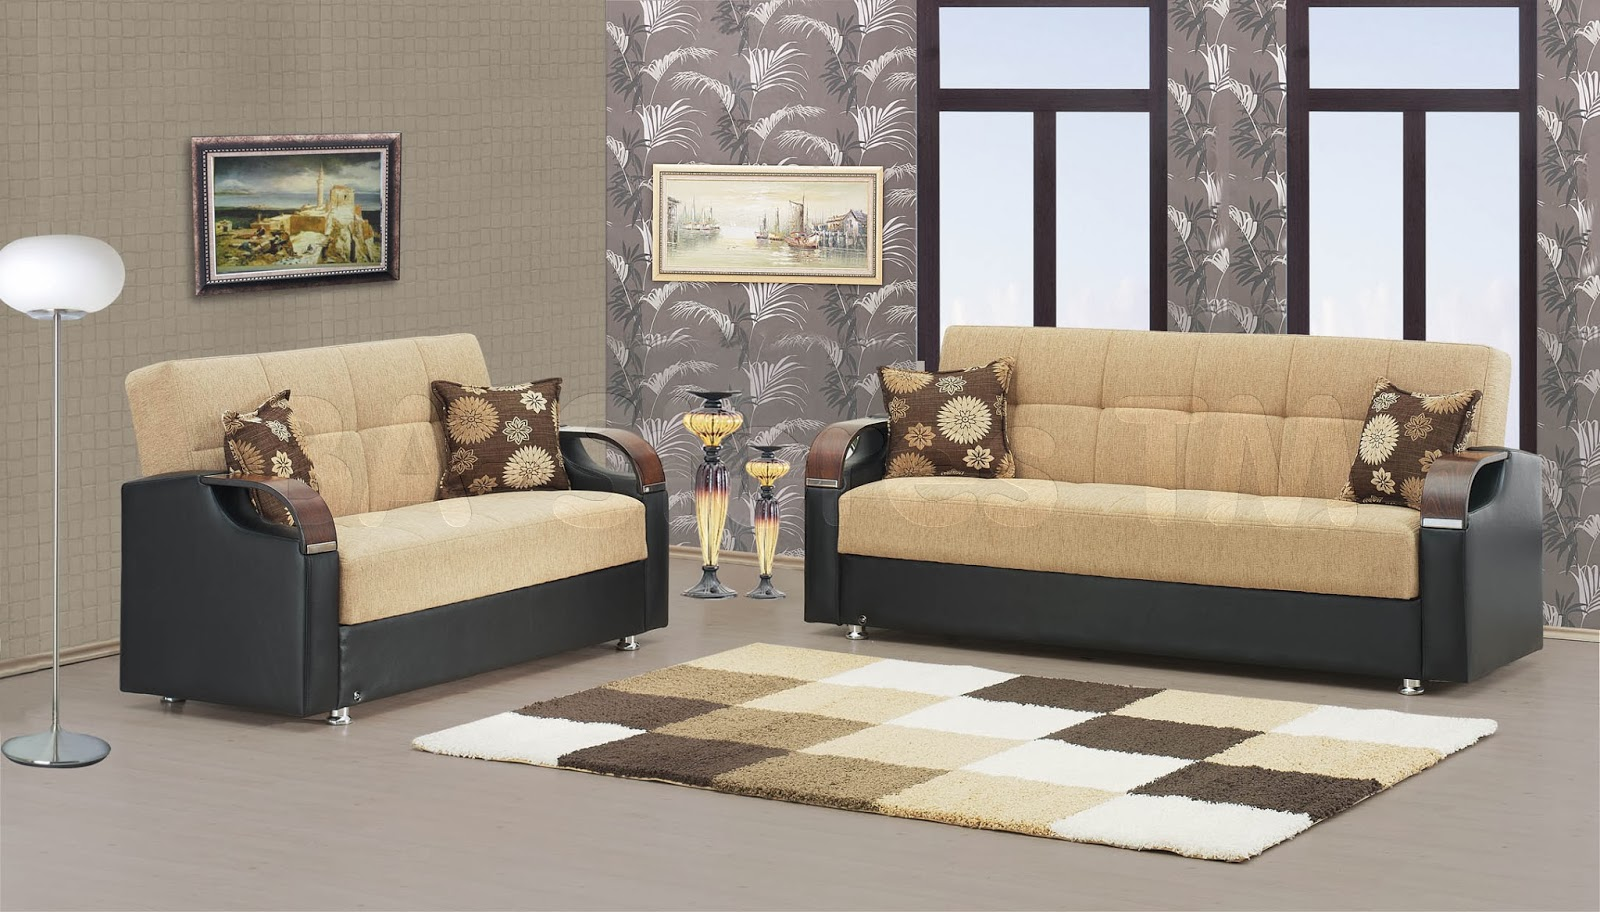 New fashion in sofa set design 2014 for Drawing room furniture designs